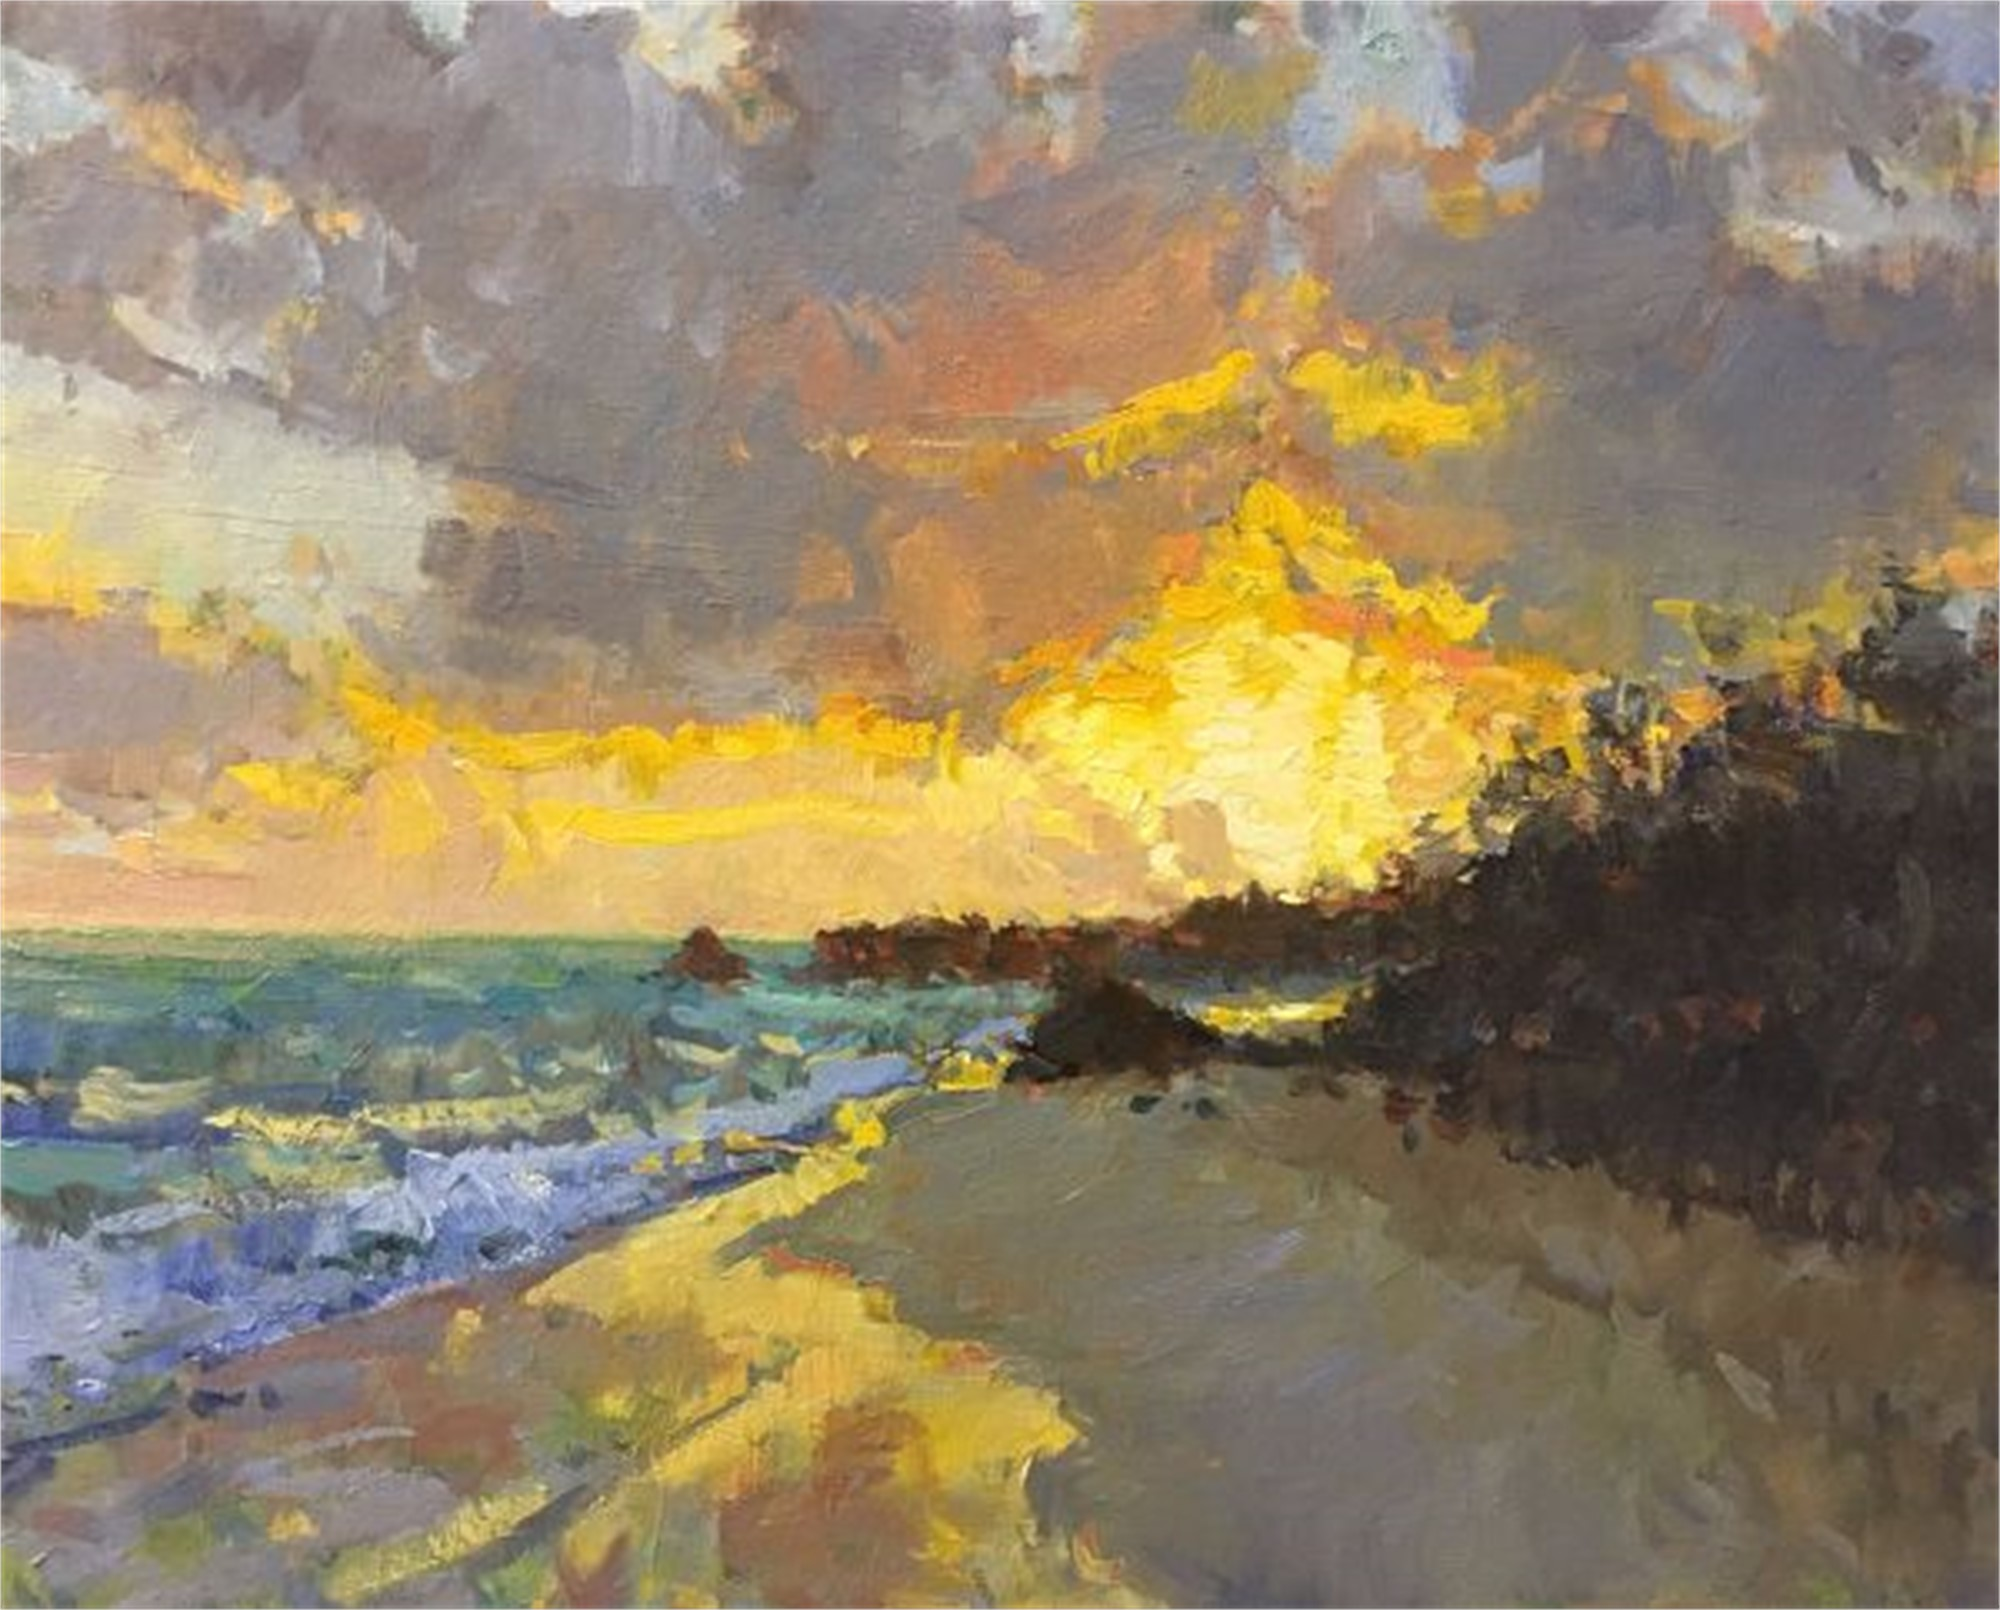 Bermuda Sunrise by Richard Oversmith